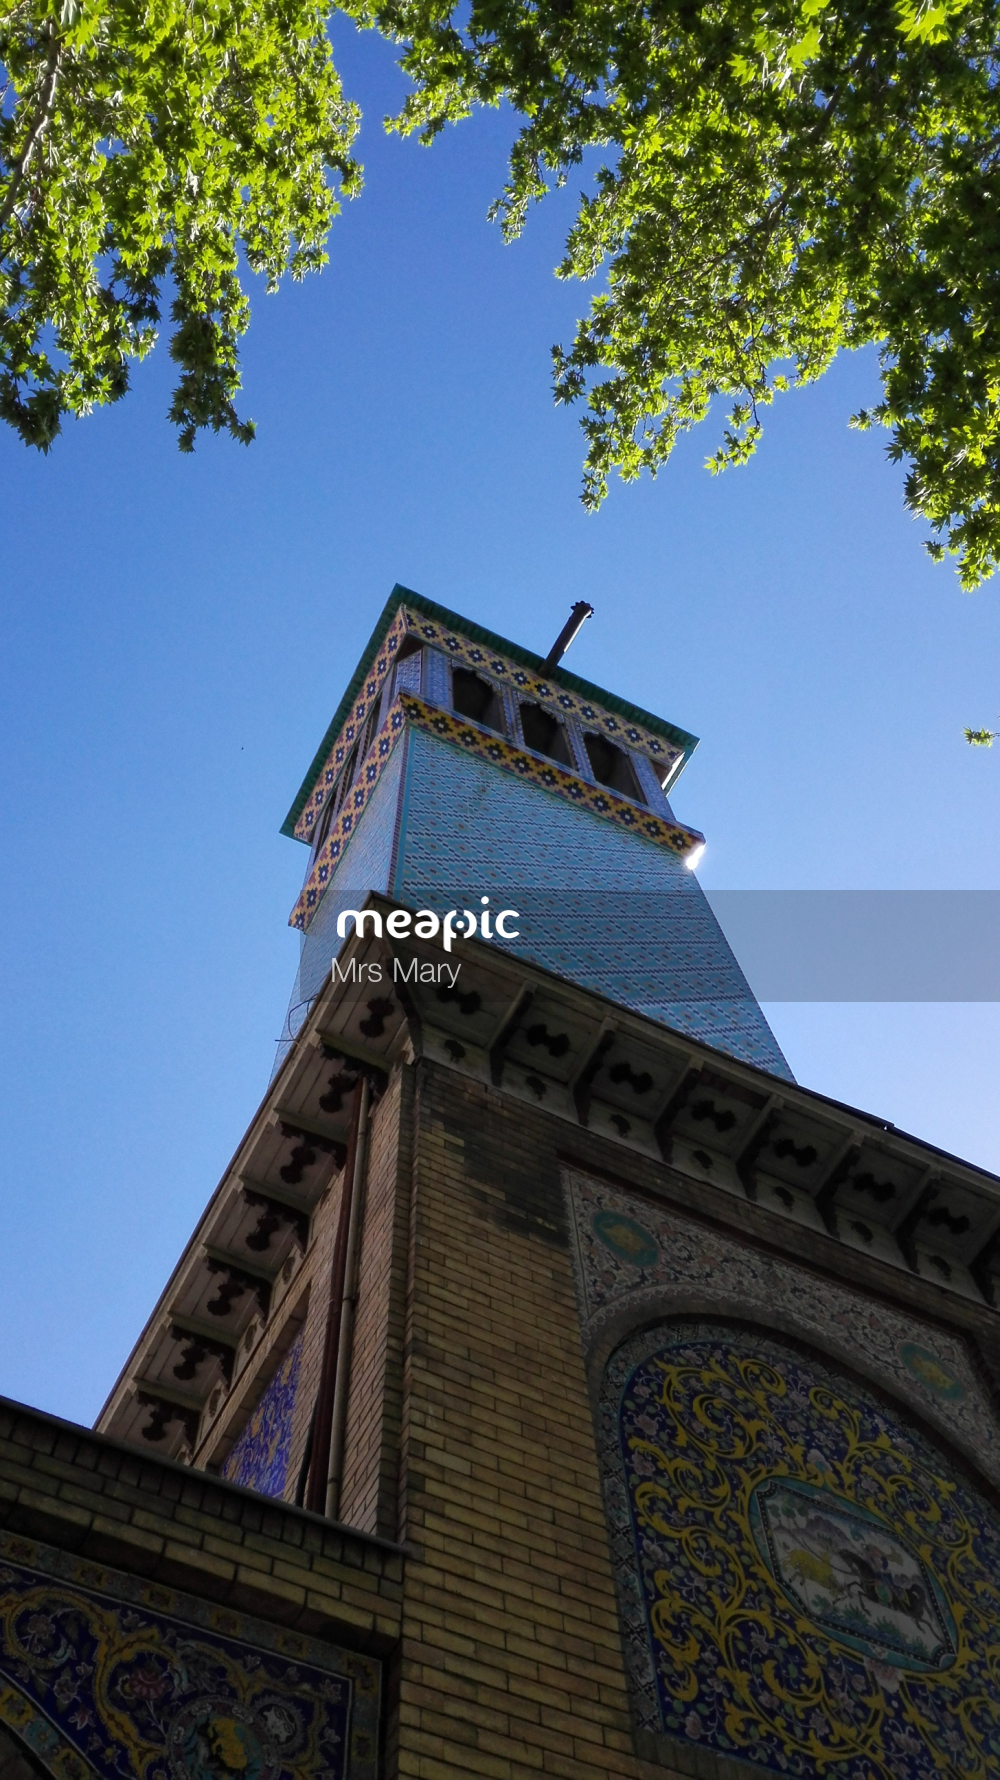 Large Tall Tower With A Clock On The Side Of A Building Stock Photo · Meapic